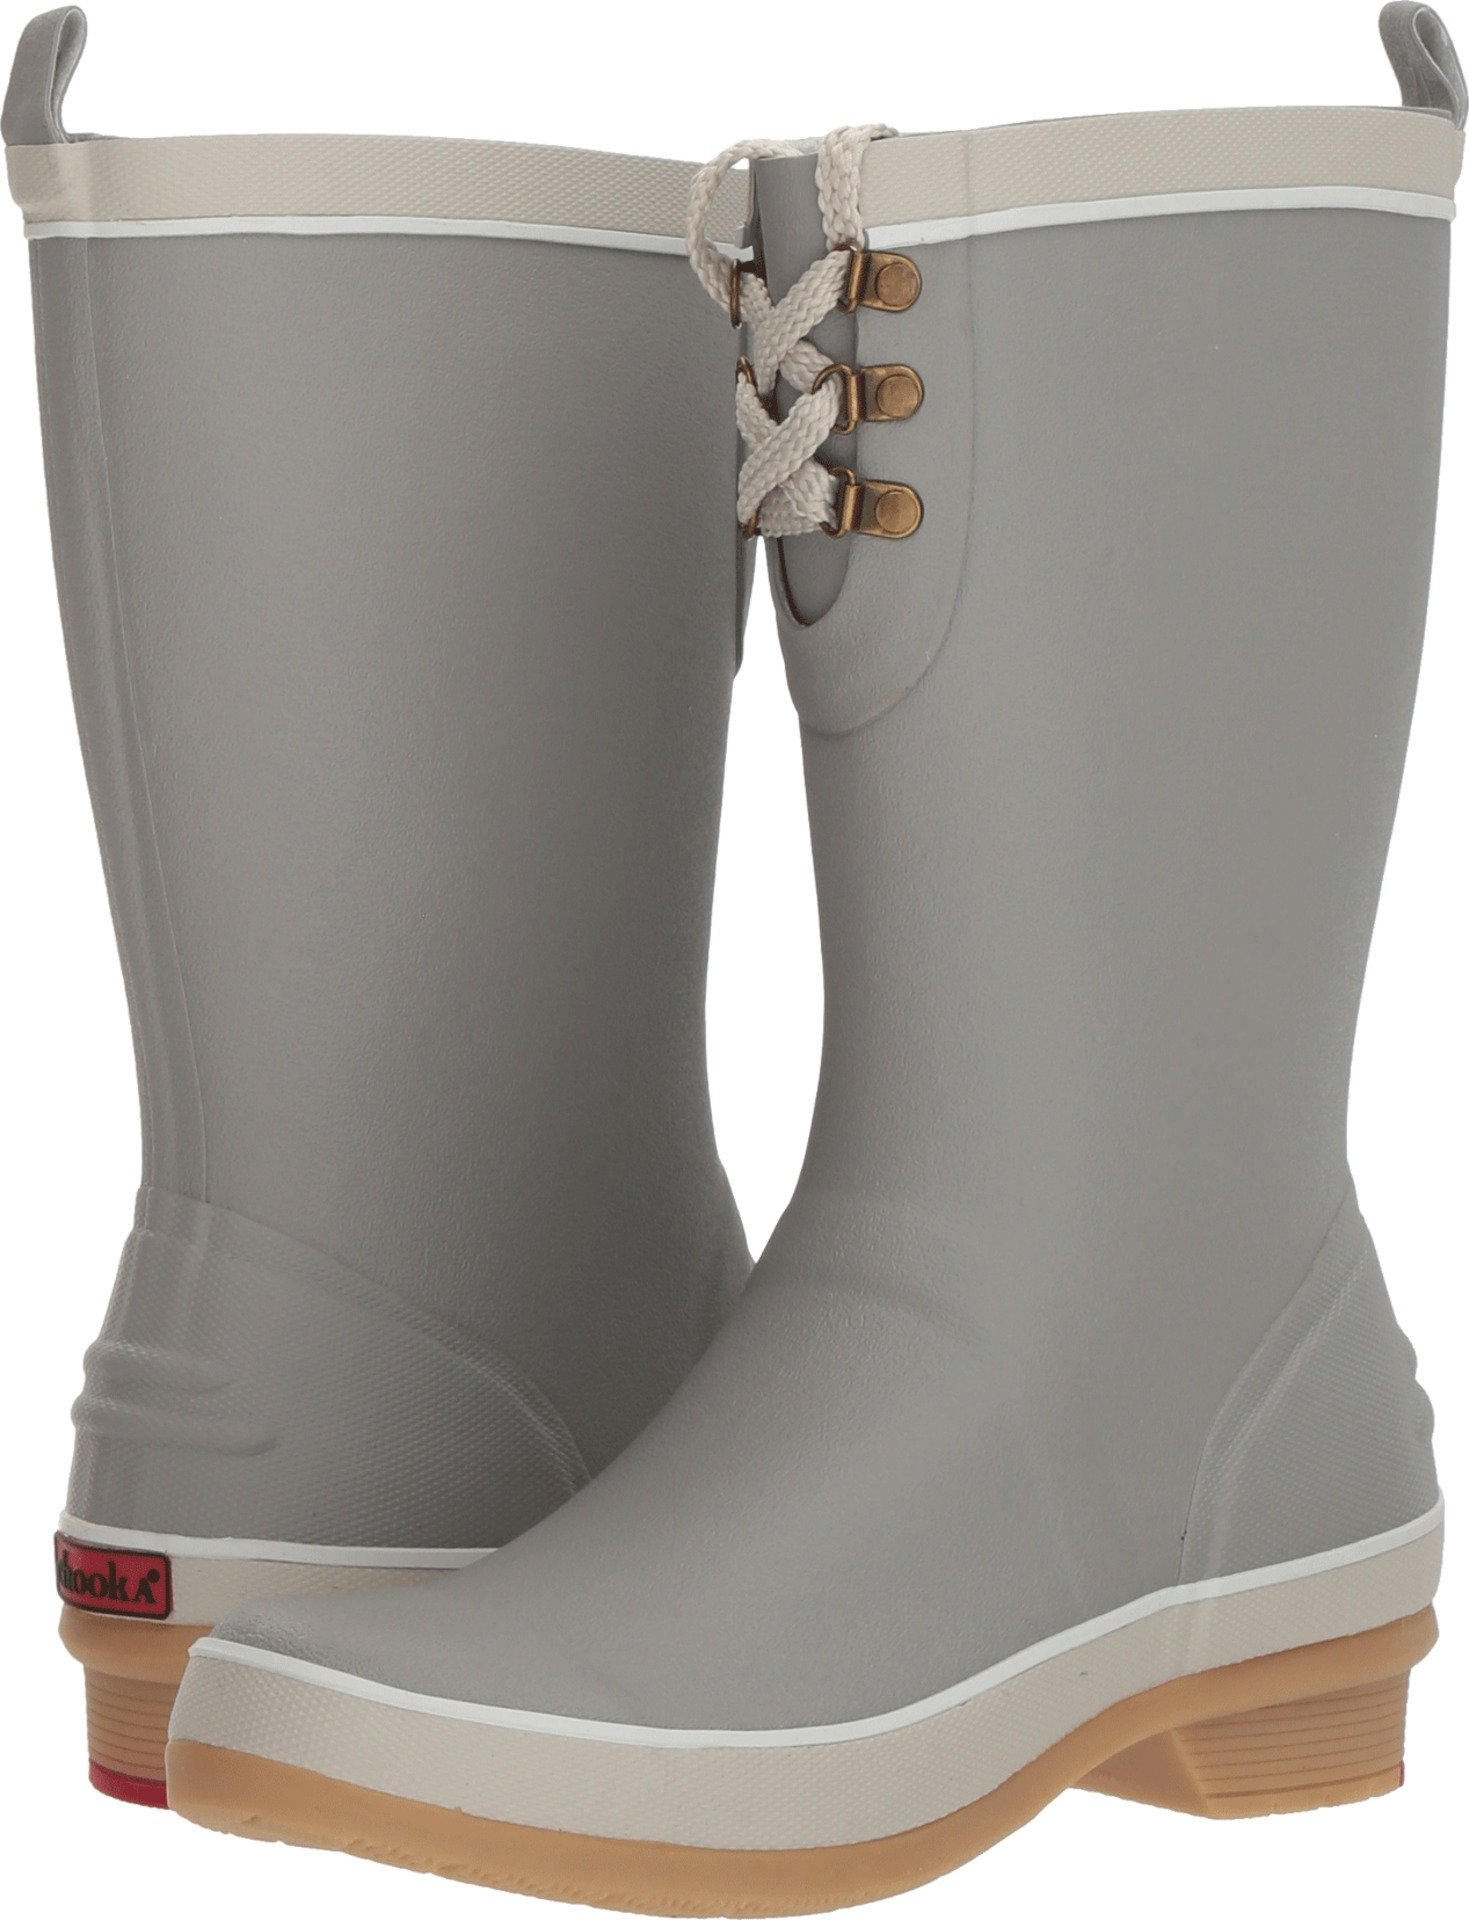 Chooka Women's Whidbey Rain Boots Mineral 8 M US